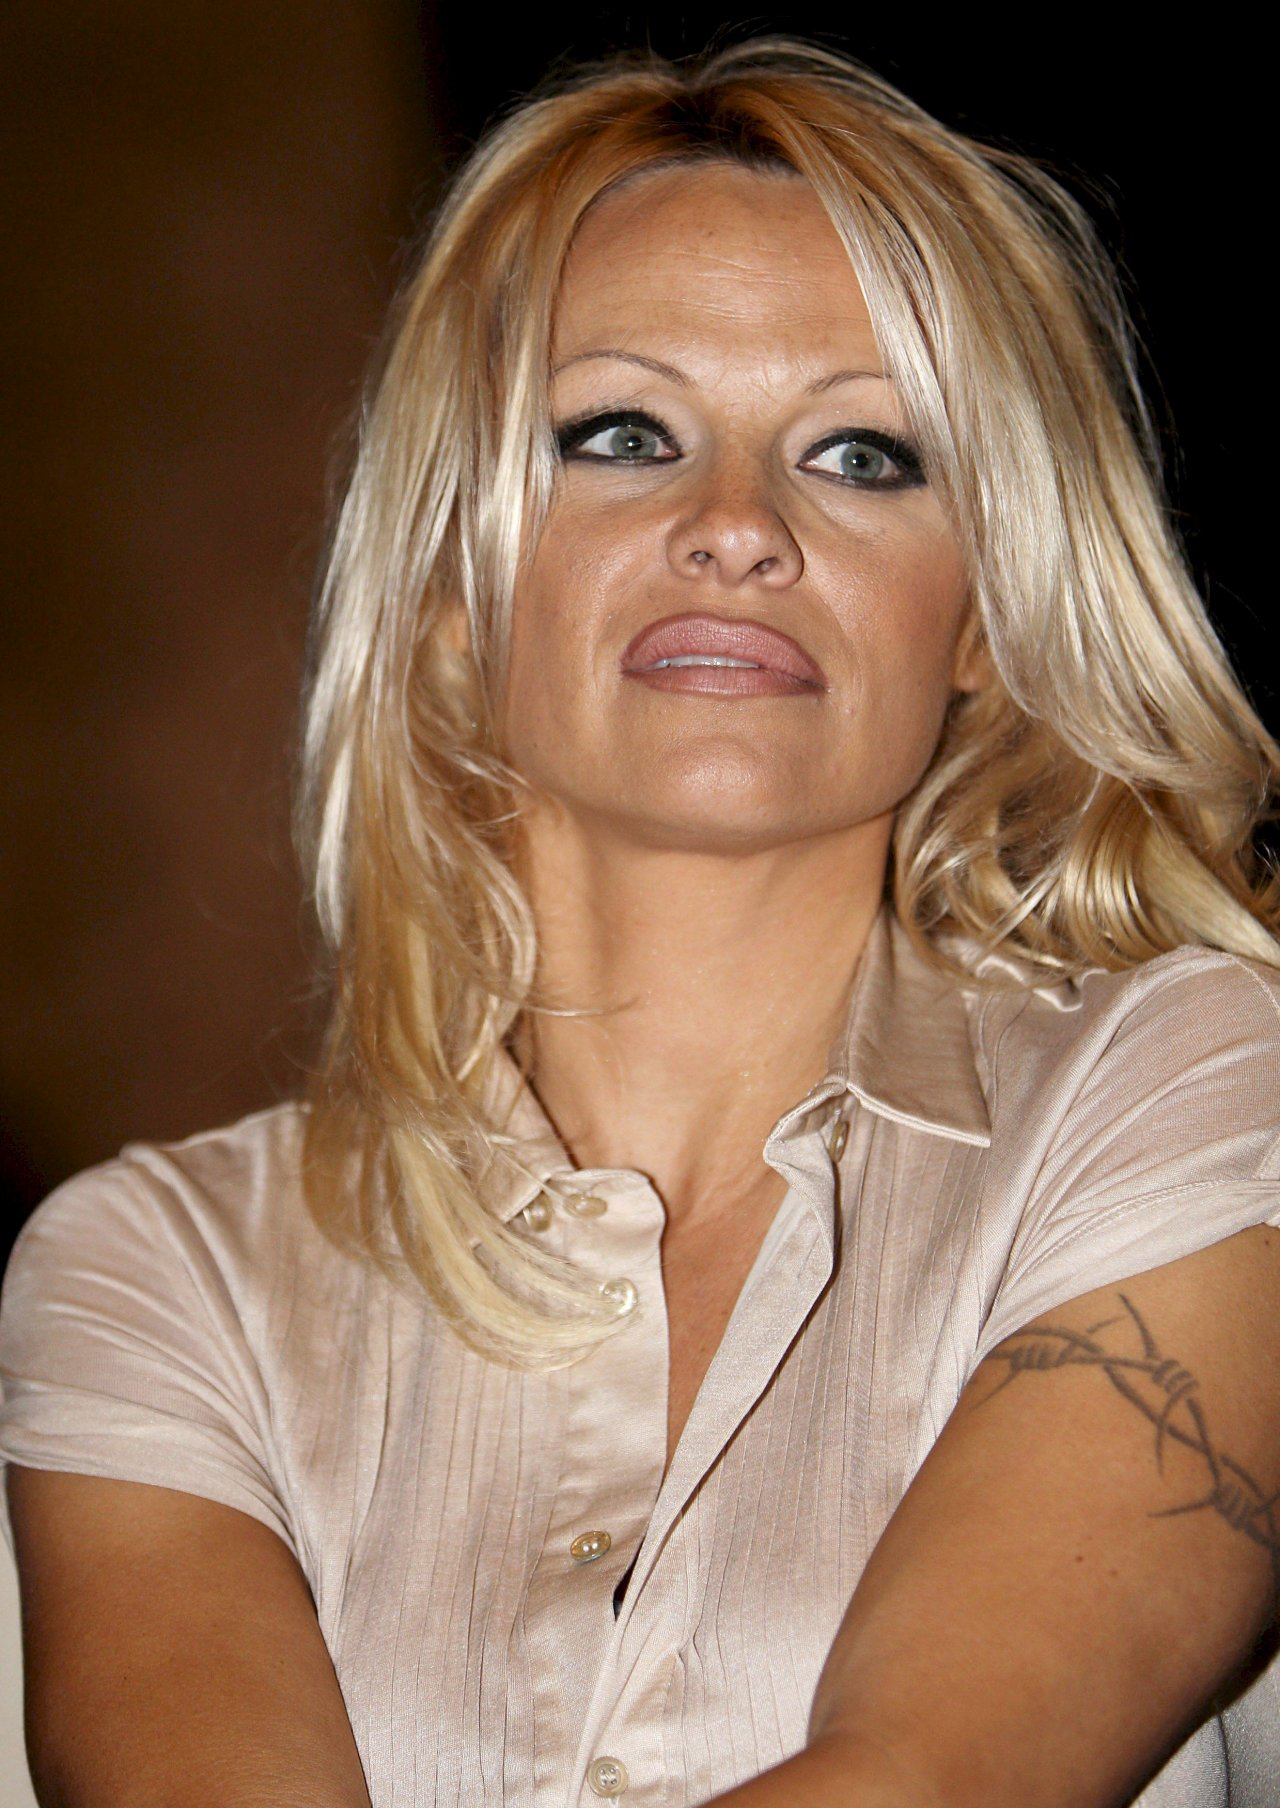 Pamela Anderson leaked photos